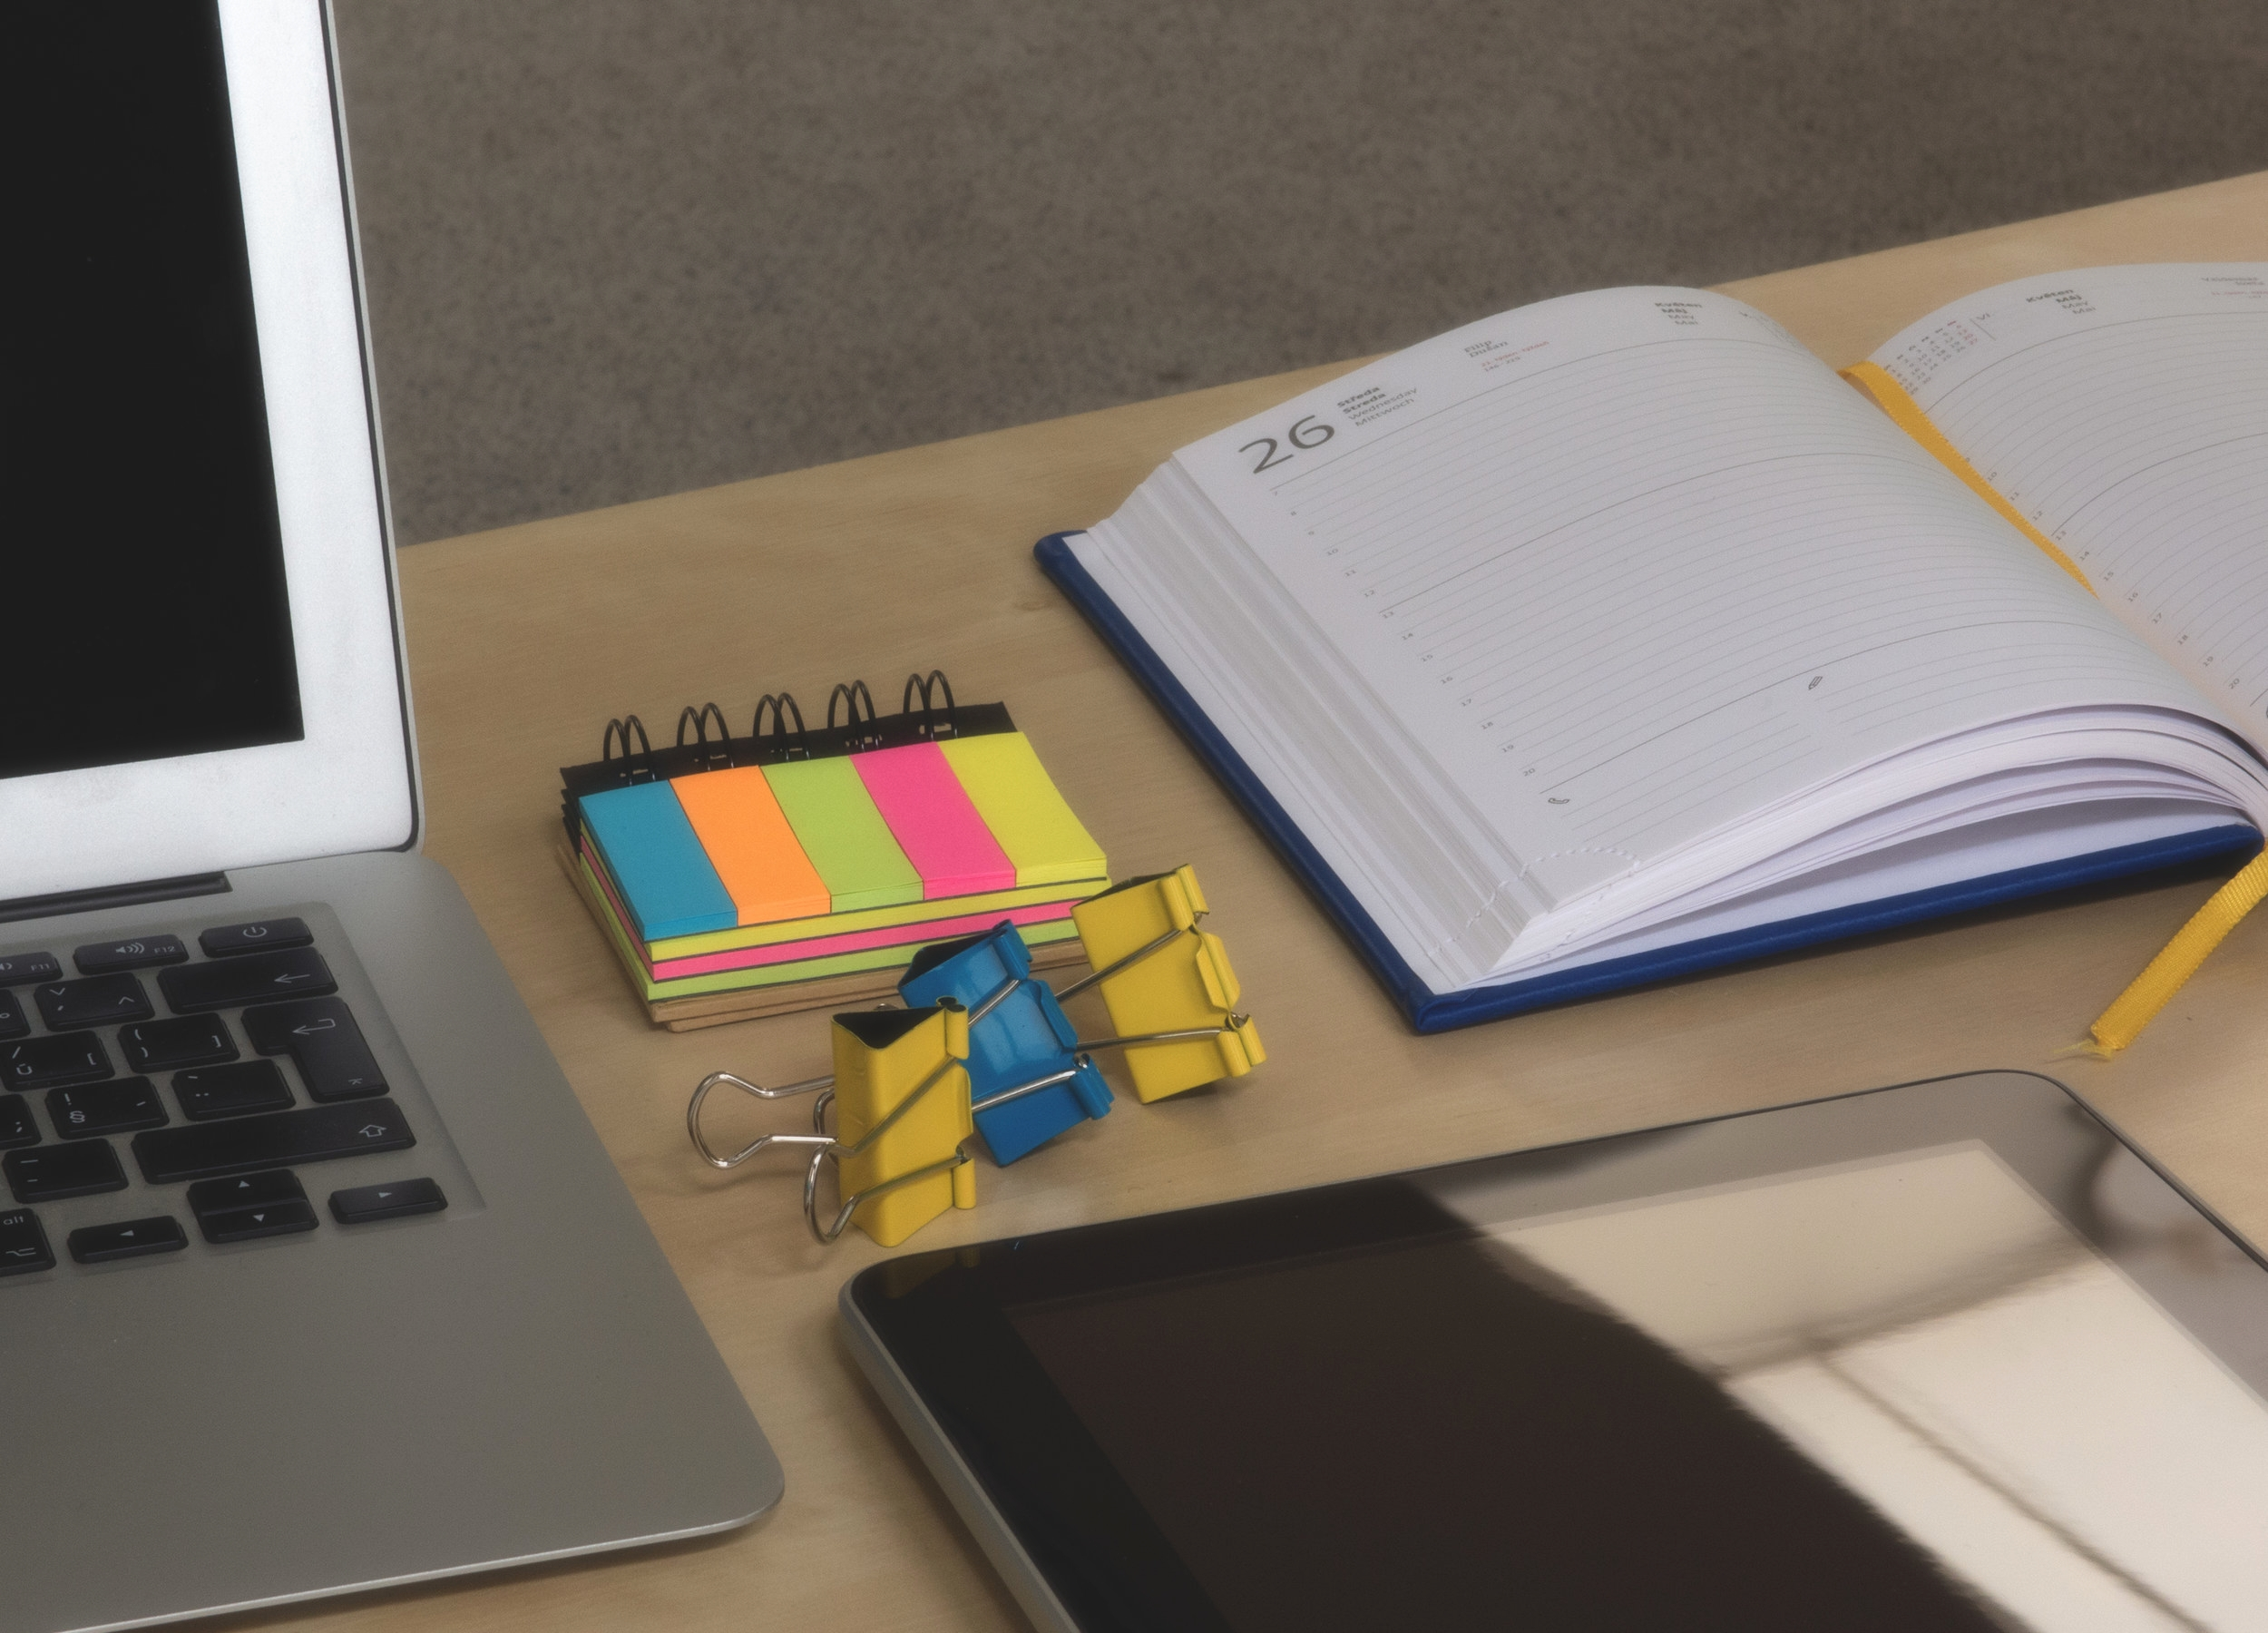 Home Office - Ready to purge paperwork and develop a filing system that works for your lifestyle?Together we can identify a usable plan for: mail and paper flow; bill paying; calendars; scheduling; and record keeping.